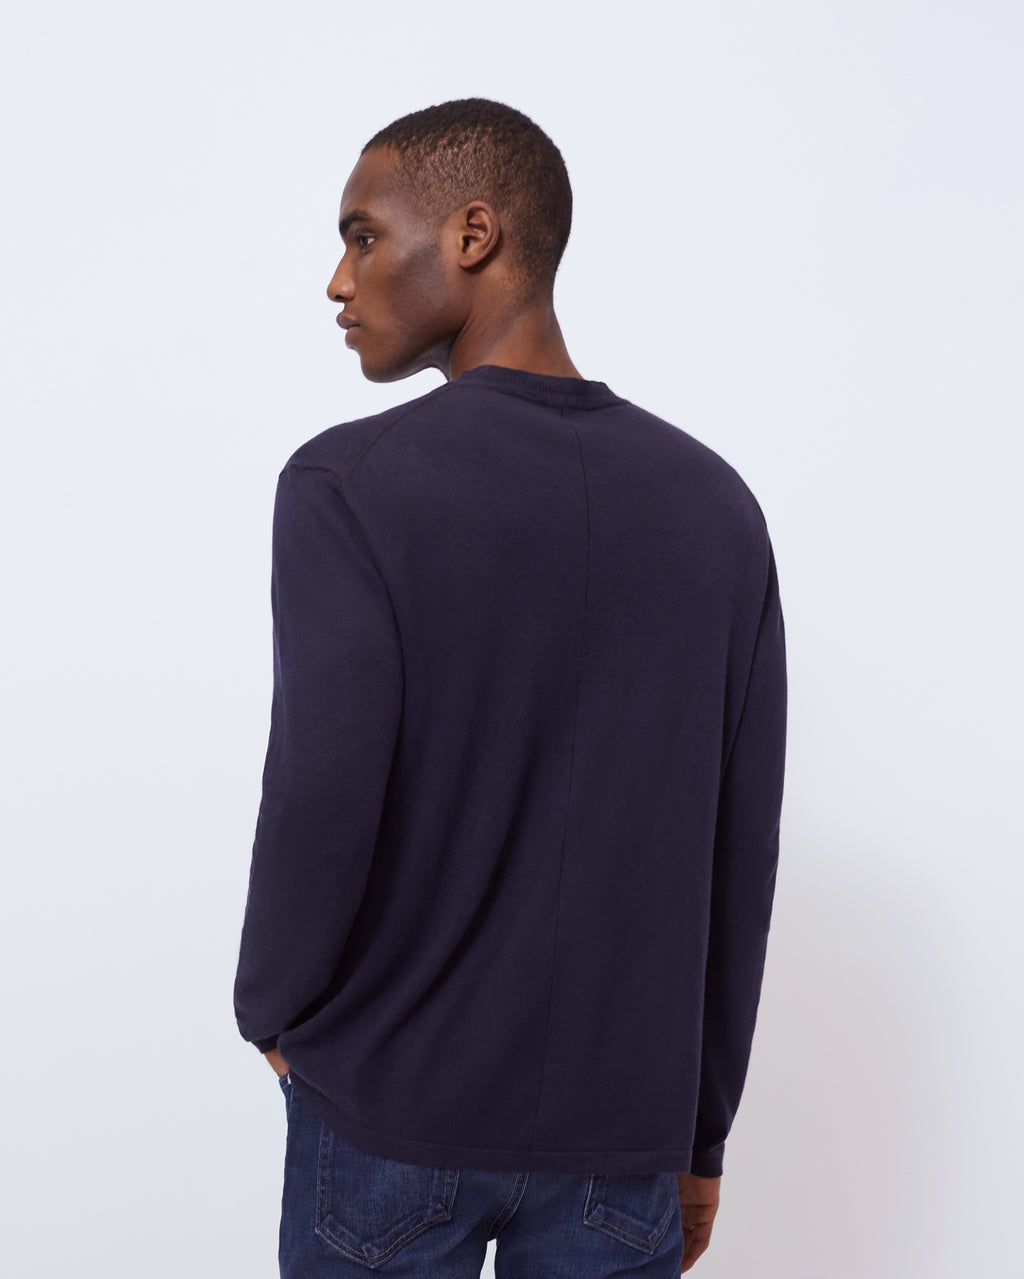 The Inez Sweater in Midnight